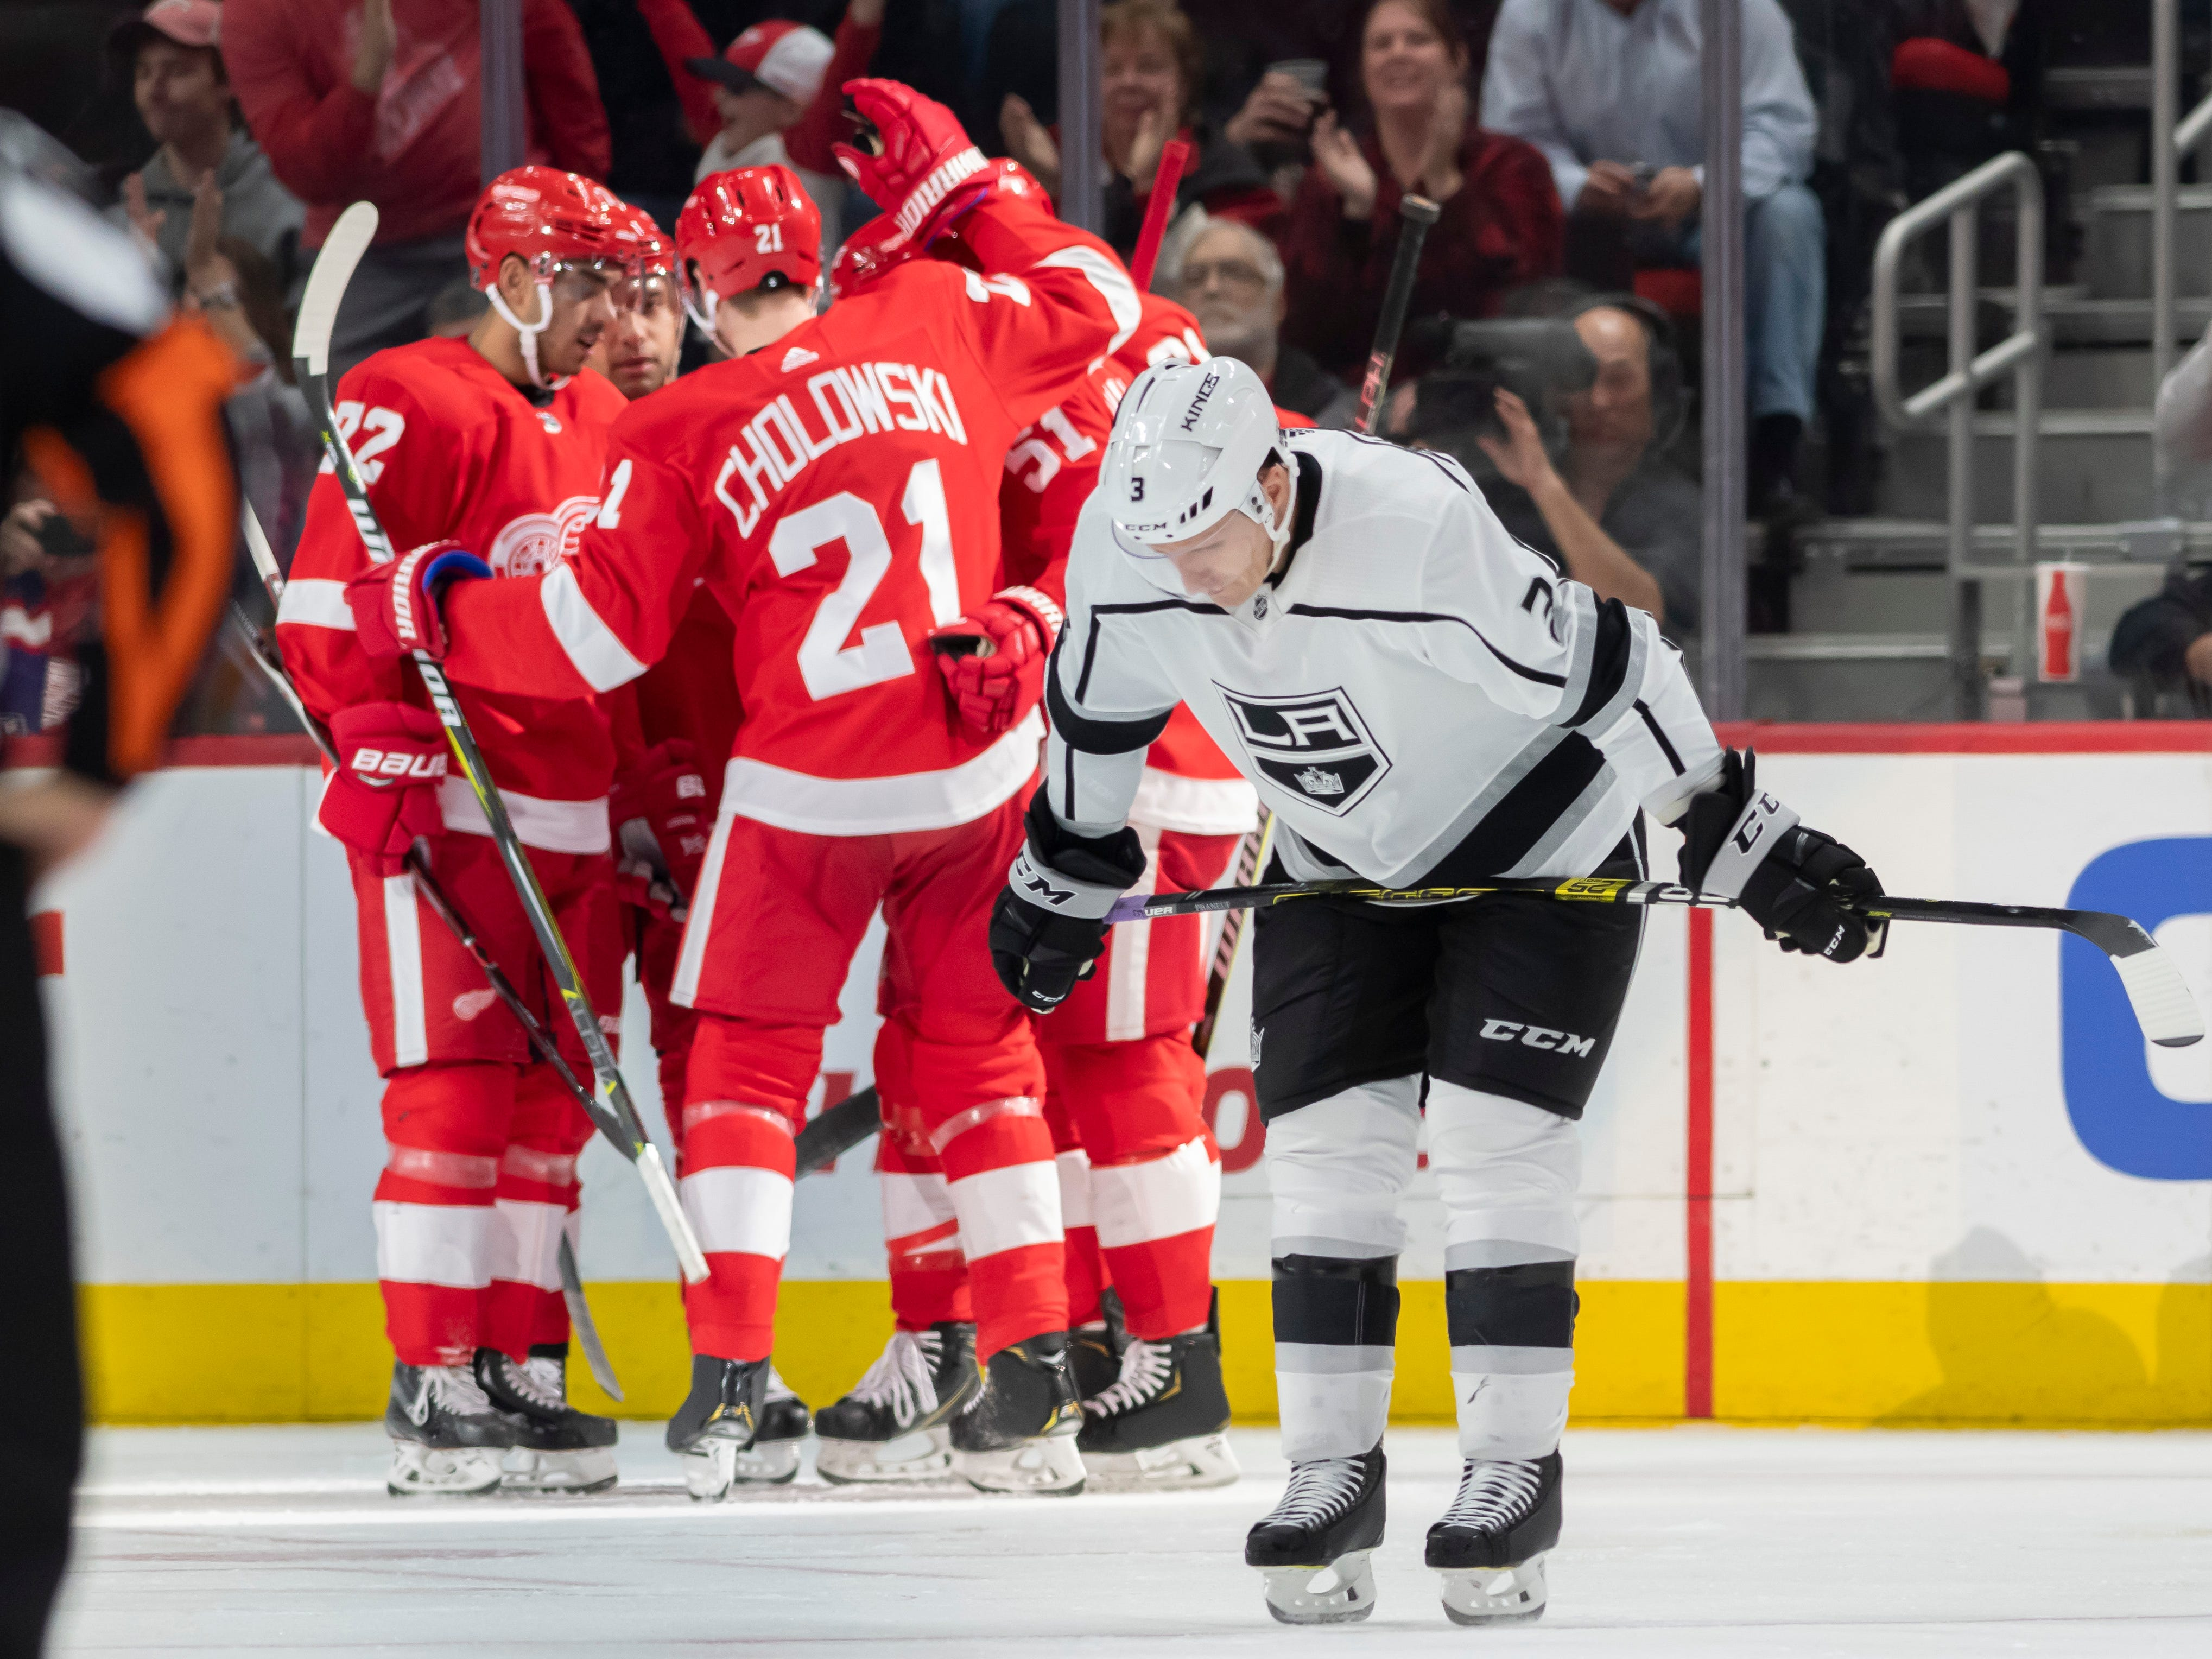 Los Angeles defenseman Dion Phaneuf looks away as Detroit celebrates a goal by center Frans Nielsen in the second period.